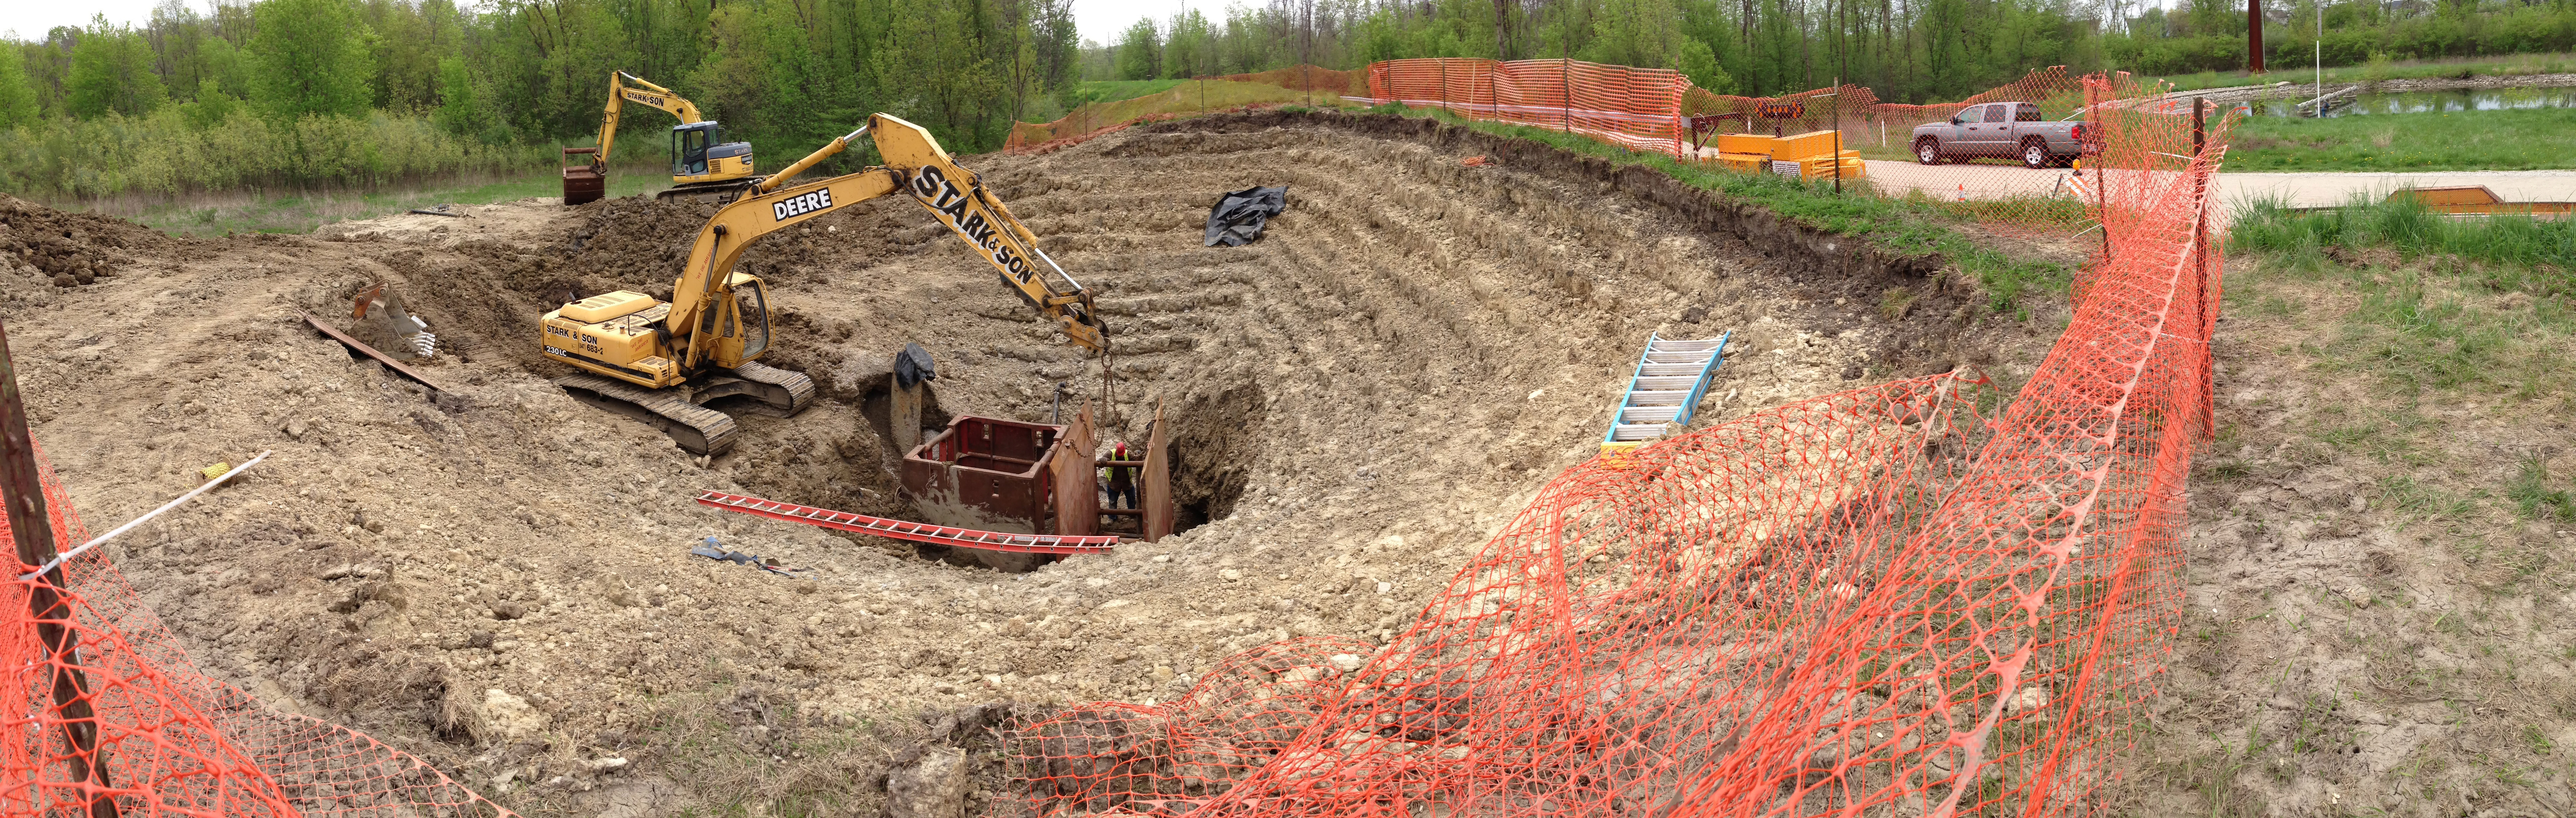 In May, contractor Stark and Son began fixing a broken utility pipe that for years had been taking in soil through a break in the pipe wall, facilitating the growth of a pre-existing sinkhole. The hole pictured was on the Main Injector berm between MI31 and MI39. Workers used the track hoe pictured to dig a hole roughly 25 feet deep. For scale, the worker in the middle of the hole is about 6 feet tall. Photo: Larry Sliwa, FESS